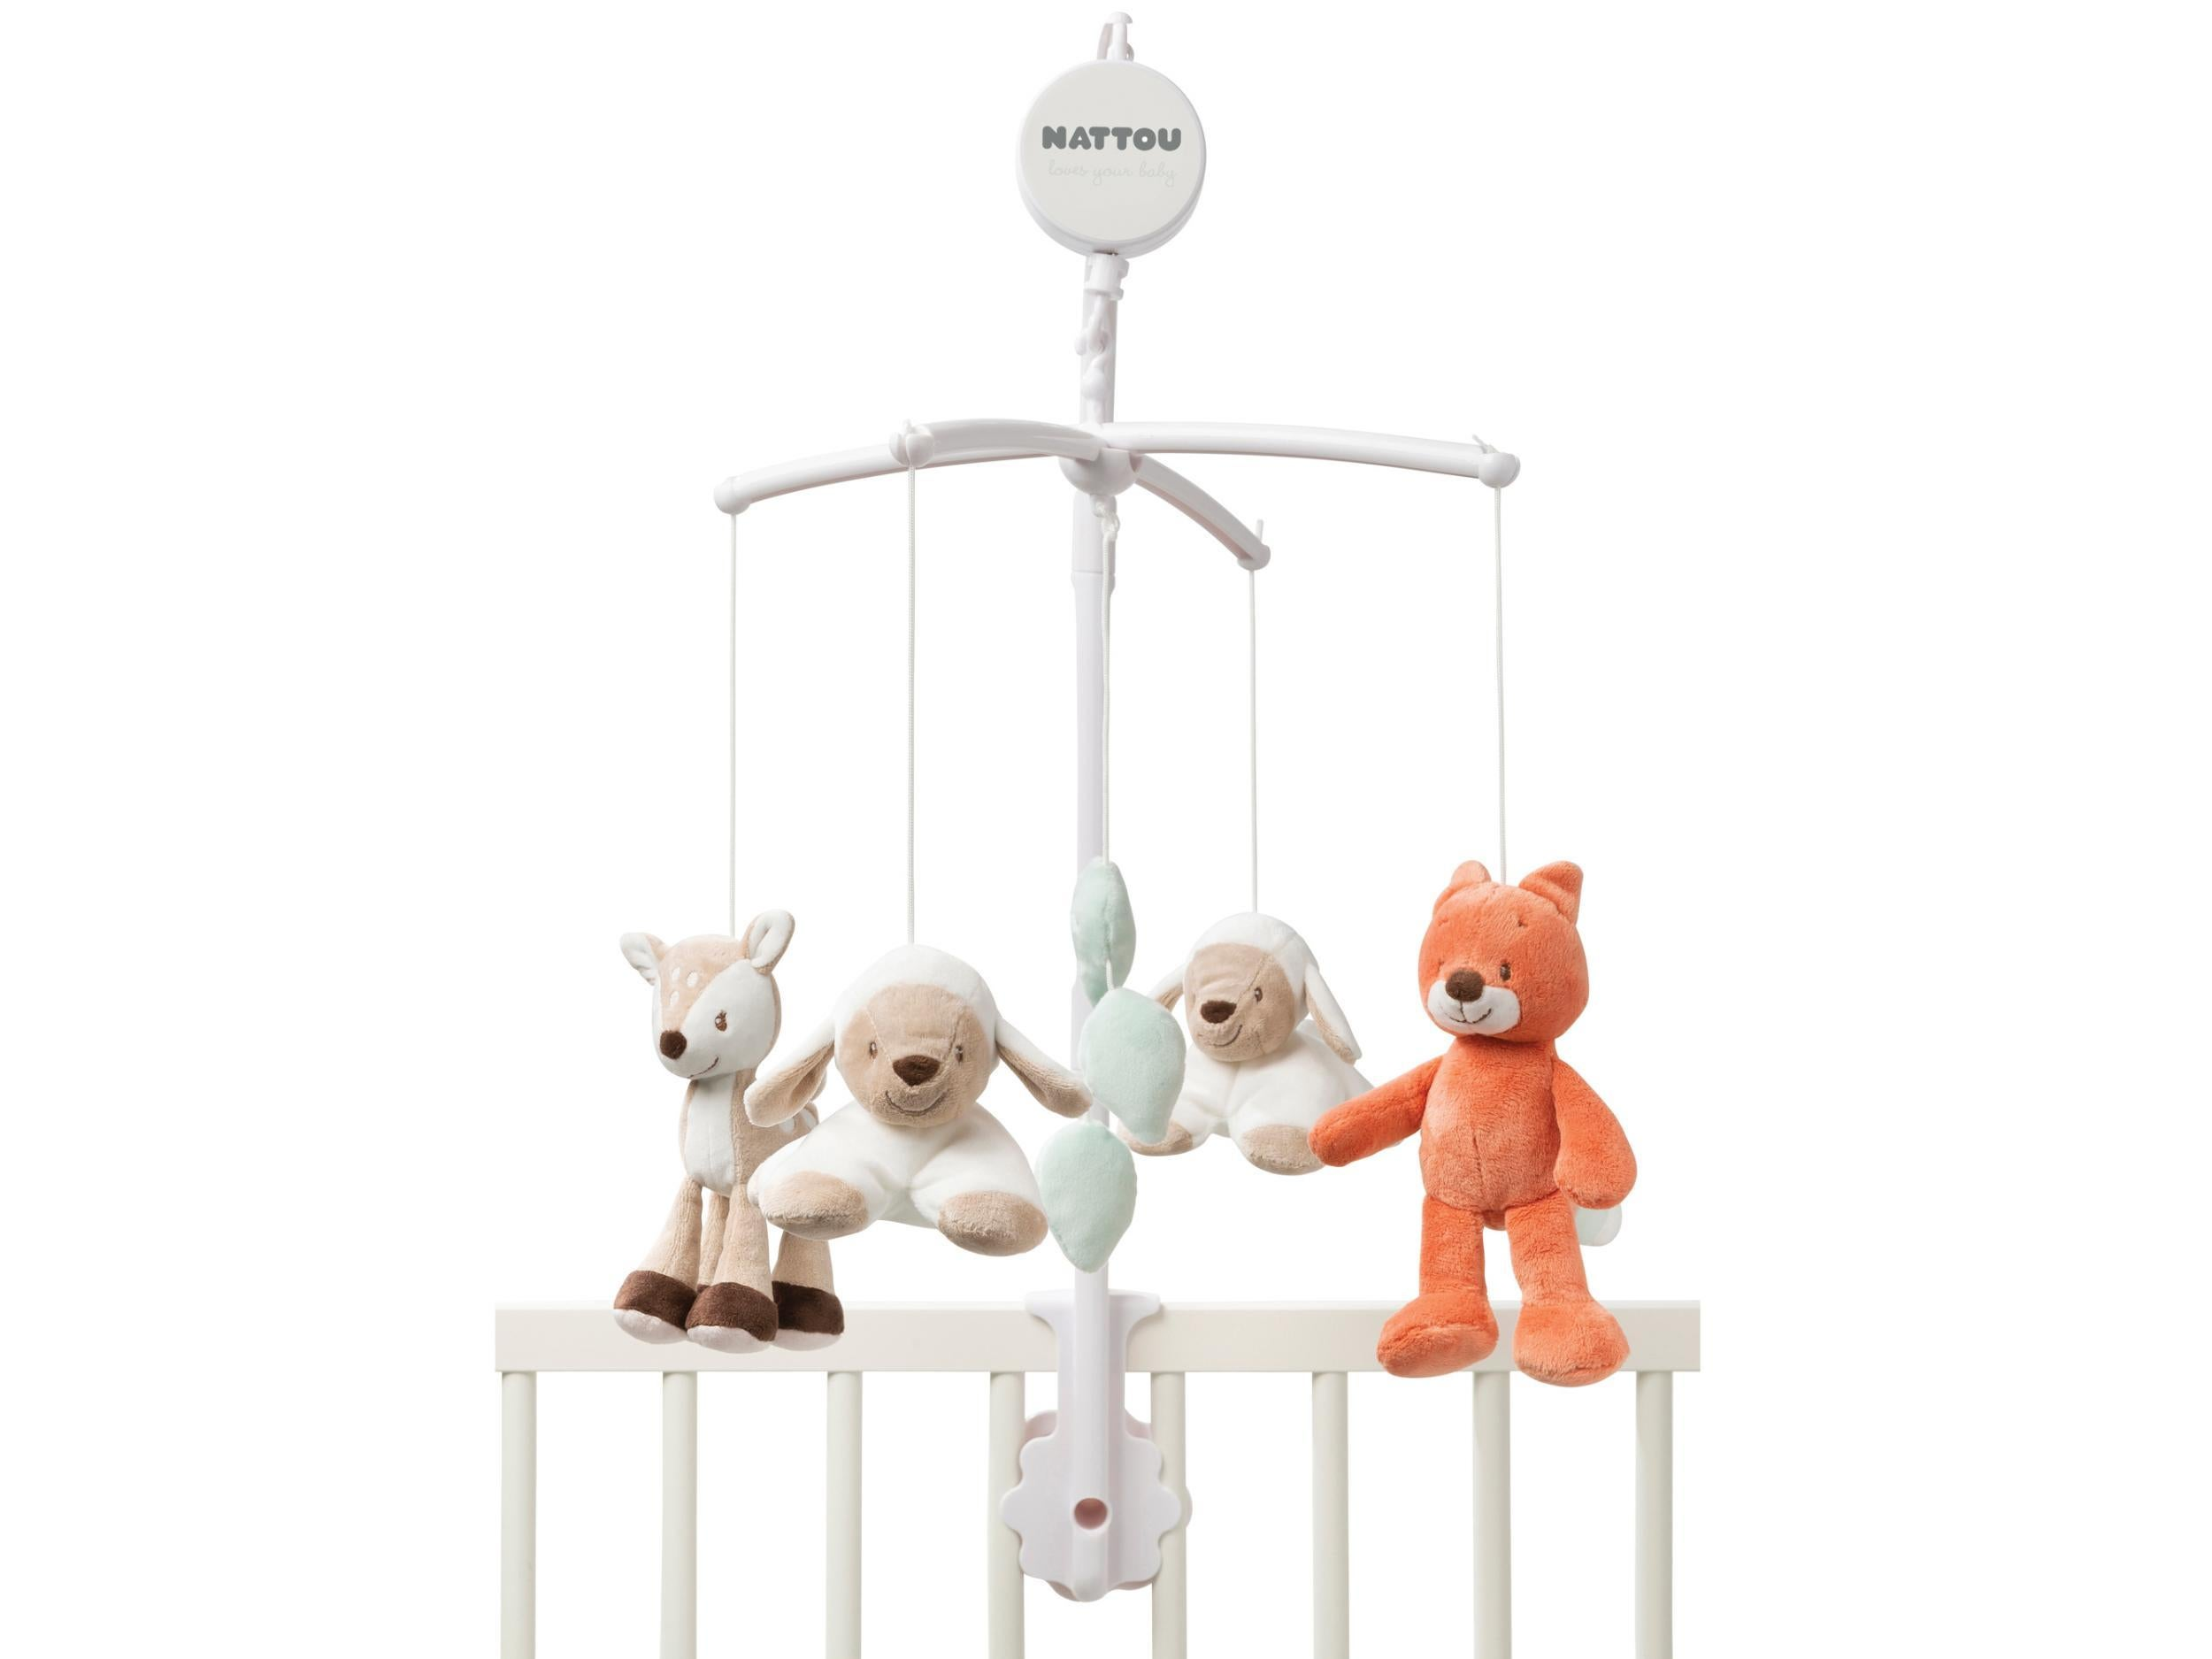 10 best baby mobiles | The Independent